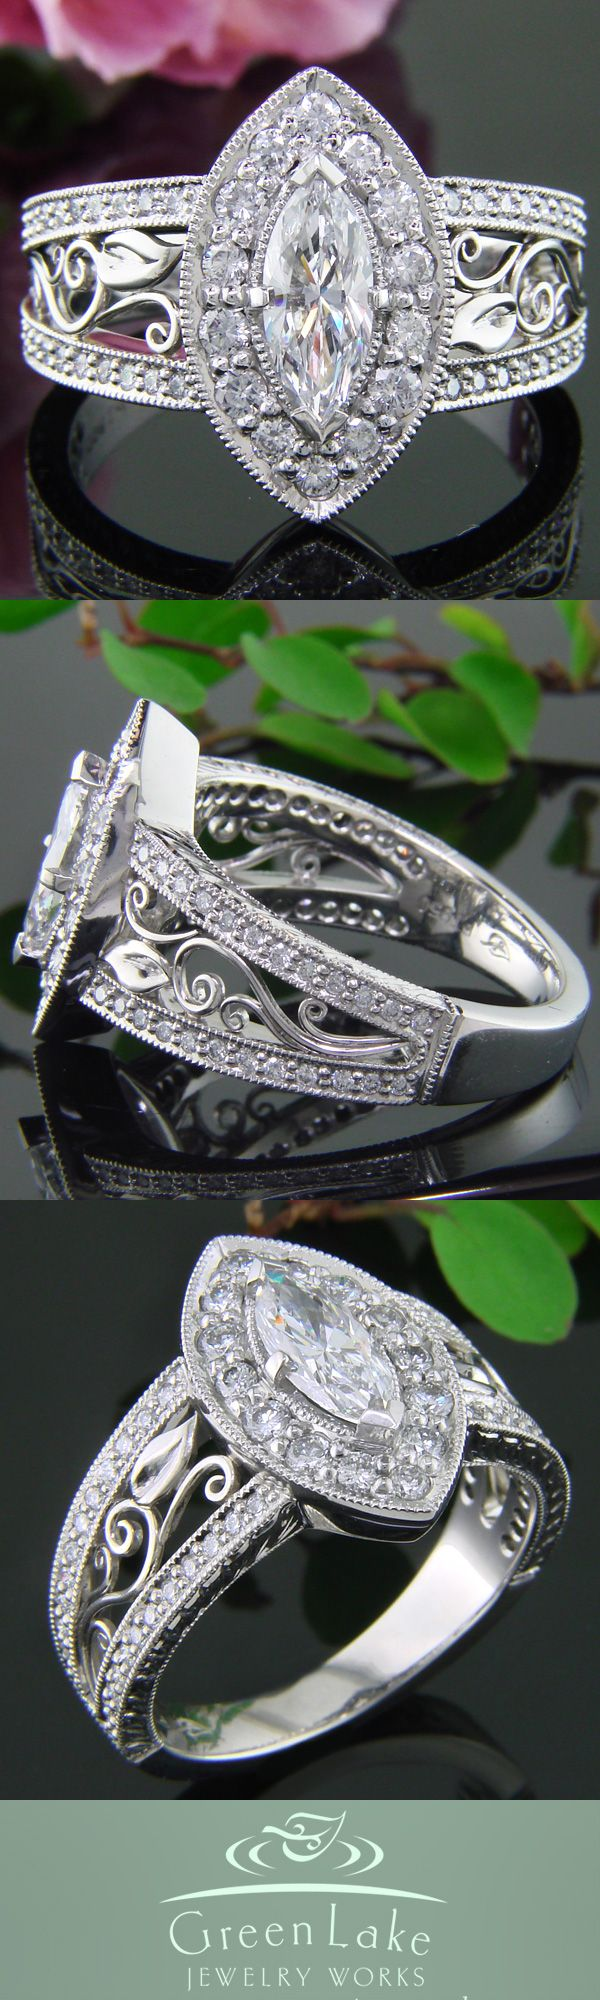 Platinum marquis halo engagement ring with hand crafted filigree